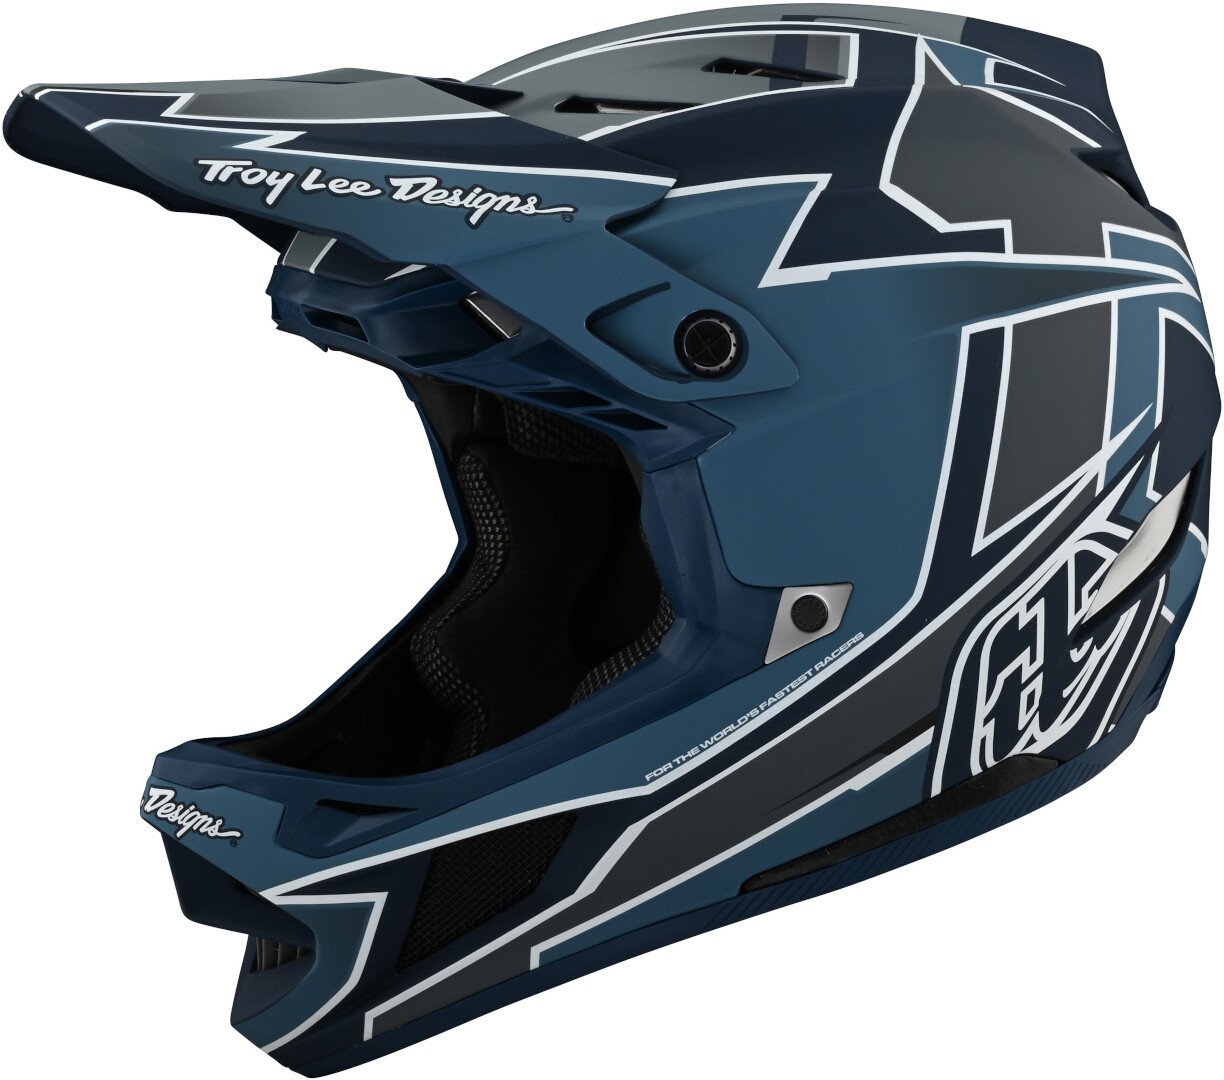 Troy Lee Designs D4 Graph MIPS Downhill Helm, schwarz-blau, Größe S, schwarz-blau, Größe S